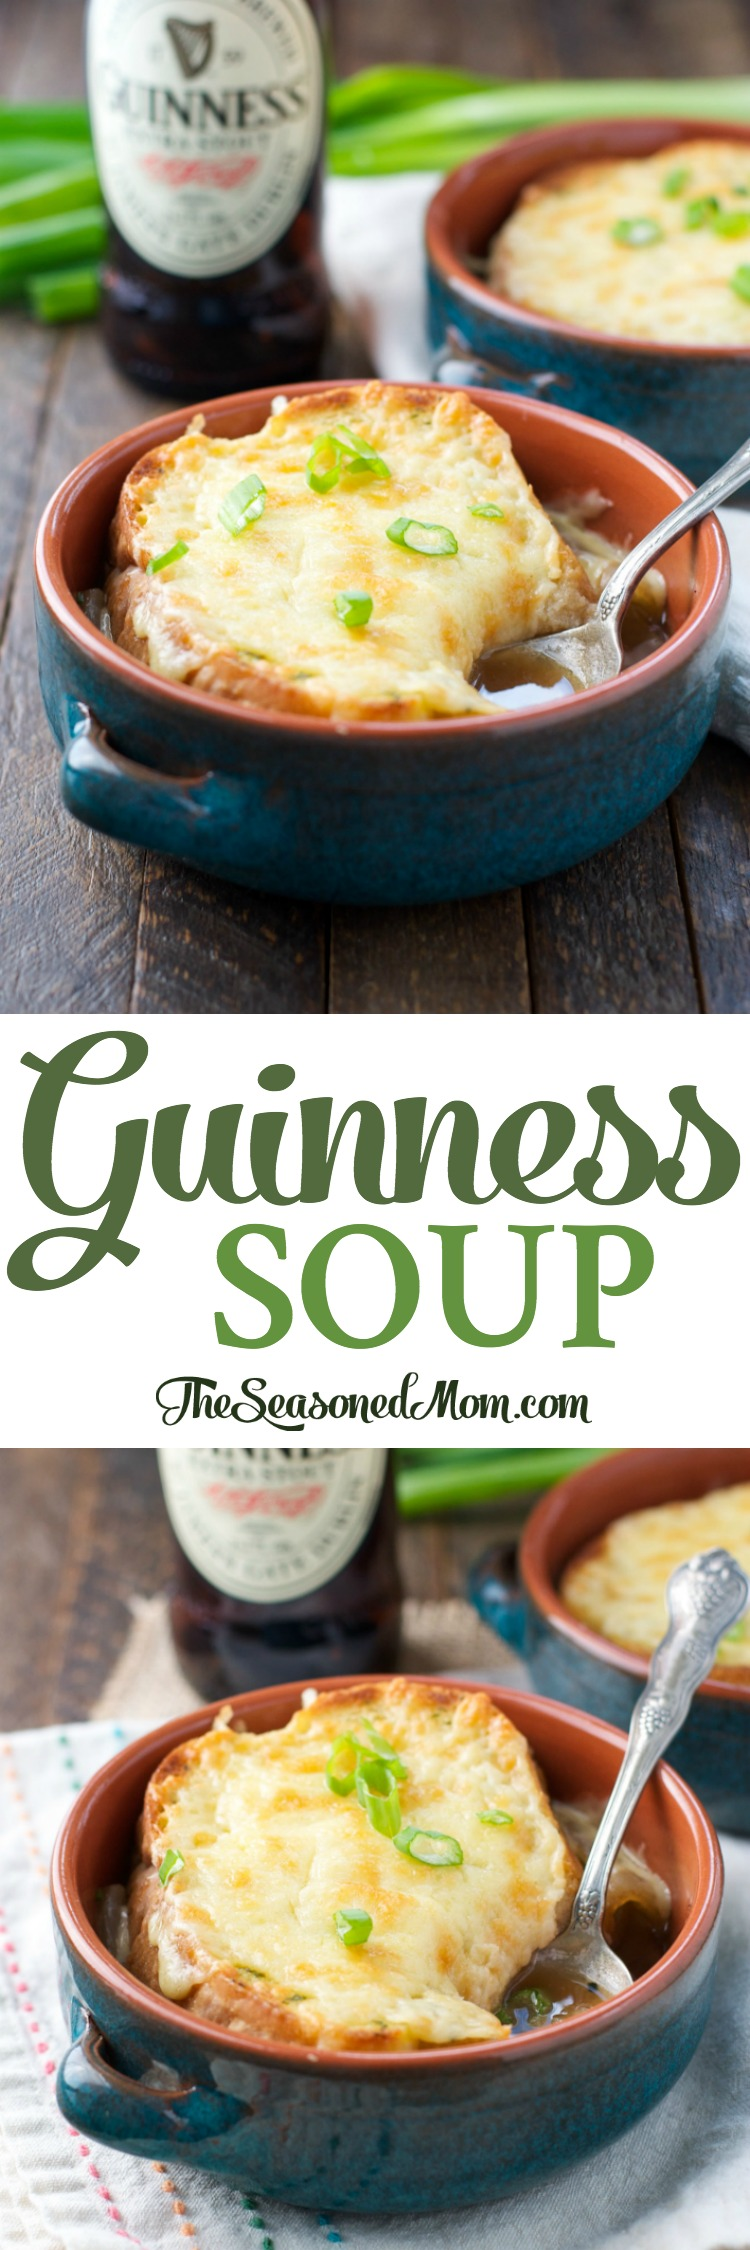 Quick and Easy Guinness Soup By The Seasoned Mom